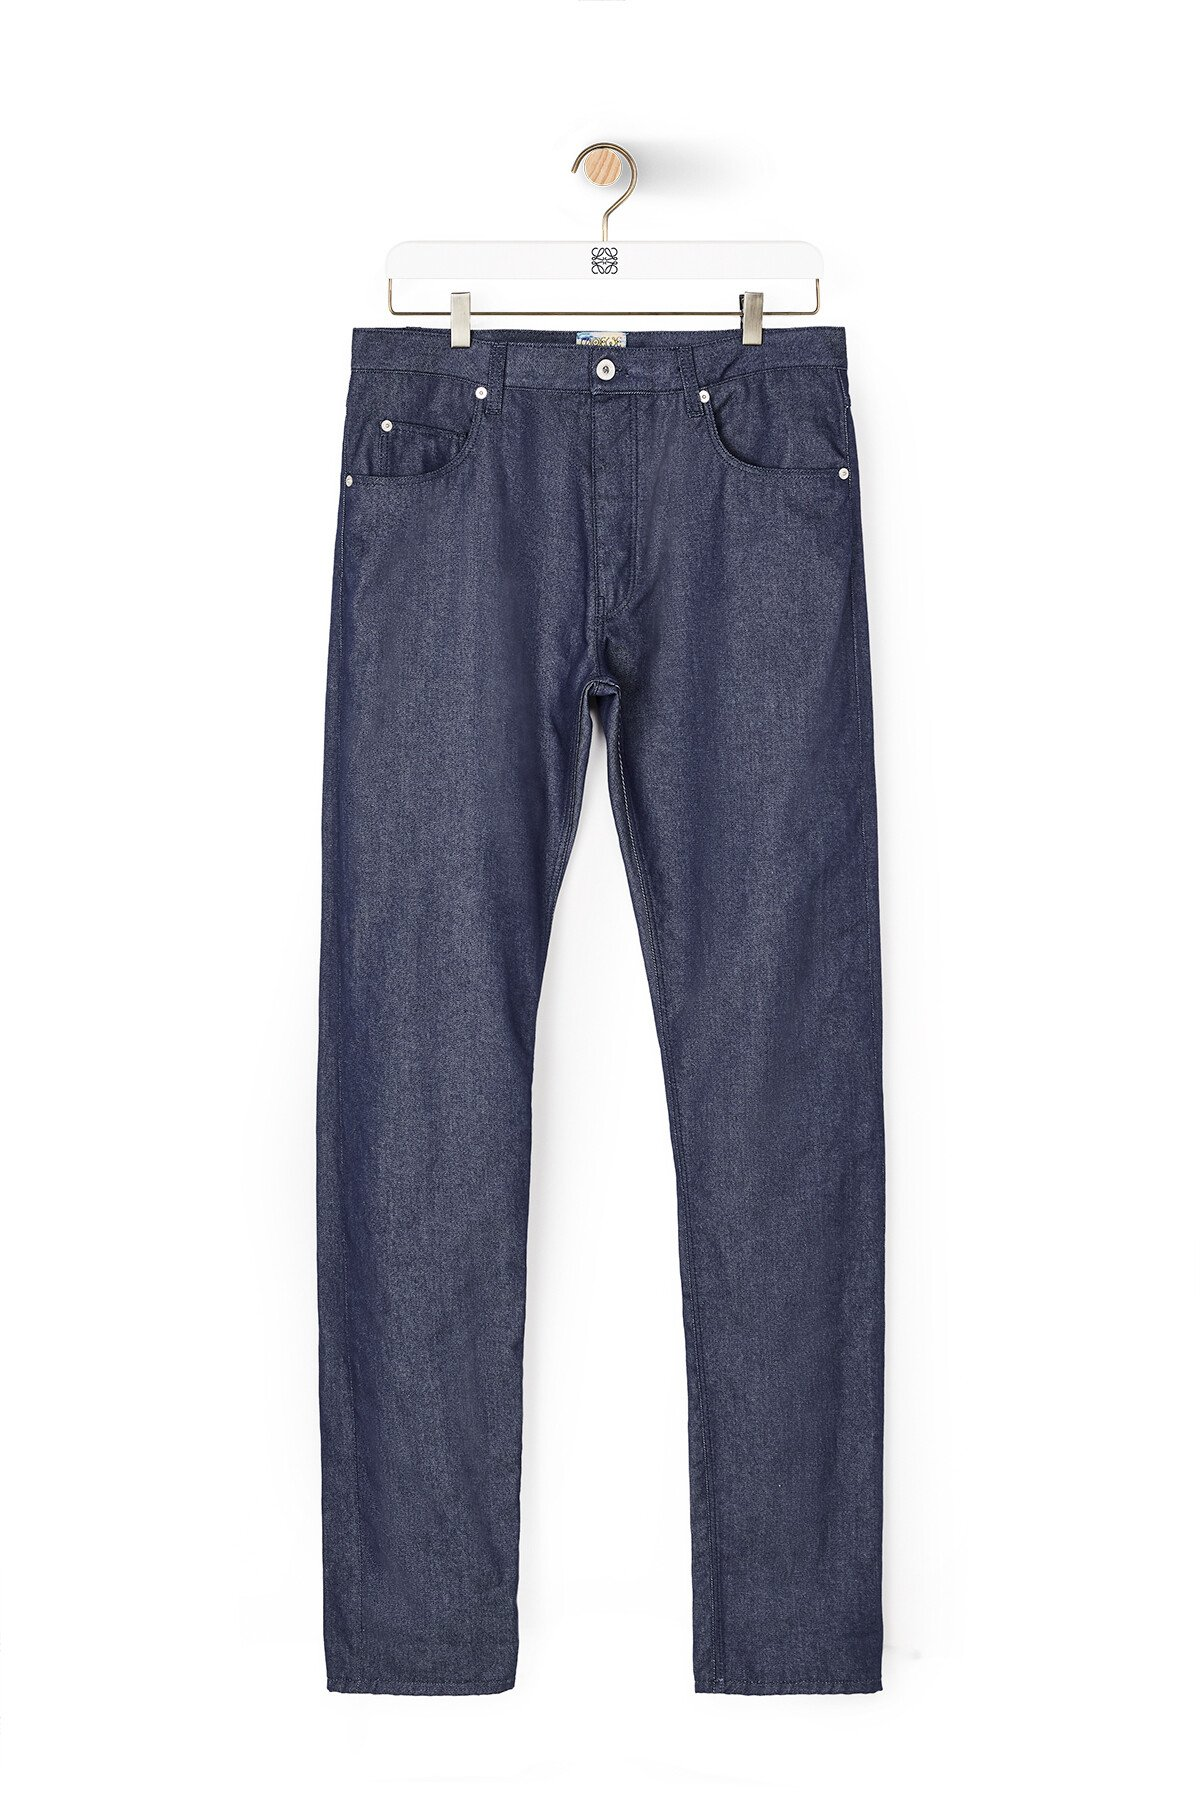 LOEWE Eln Jeans Navy Blue front